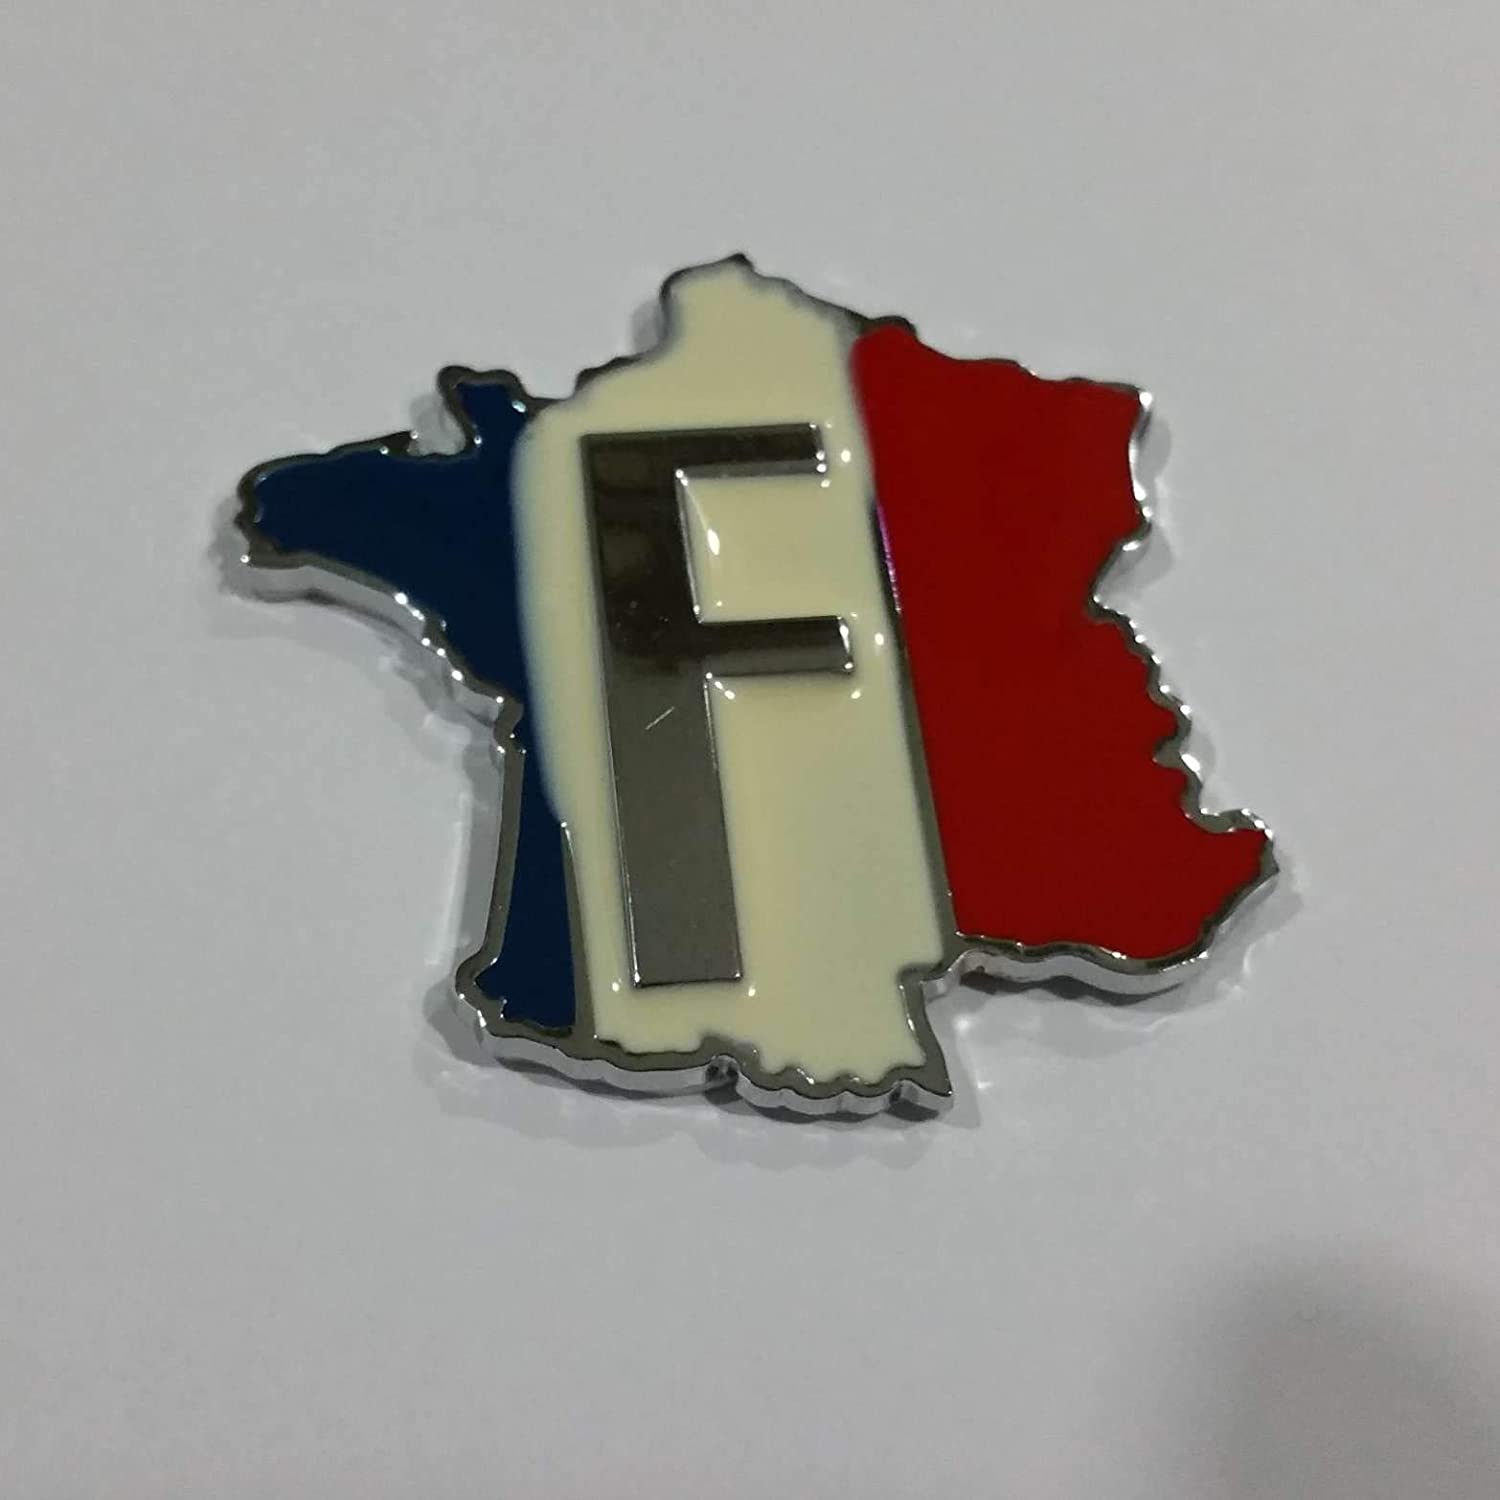 1 Piece SAISDON France Flag Union Jack Hq Metal Chrome Car Badge Sticker Decal Emblem Trunk Side Logo Auto 3D Adhesive Die Cast Zinc Alloy 2061